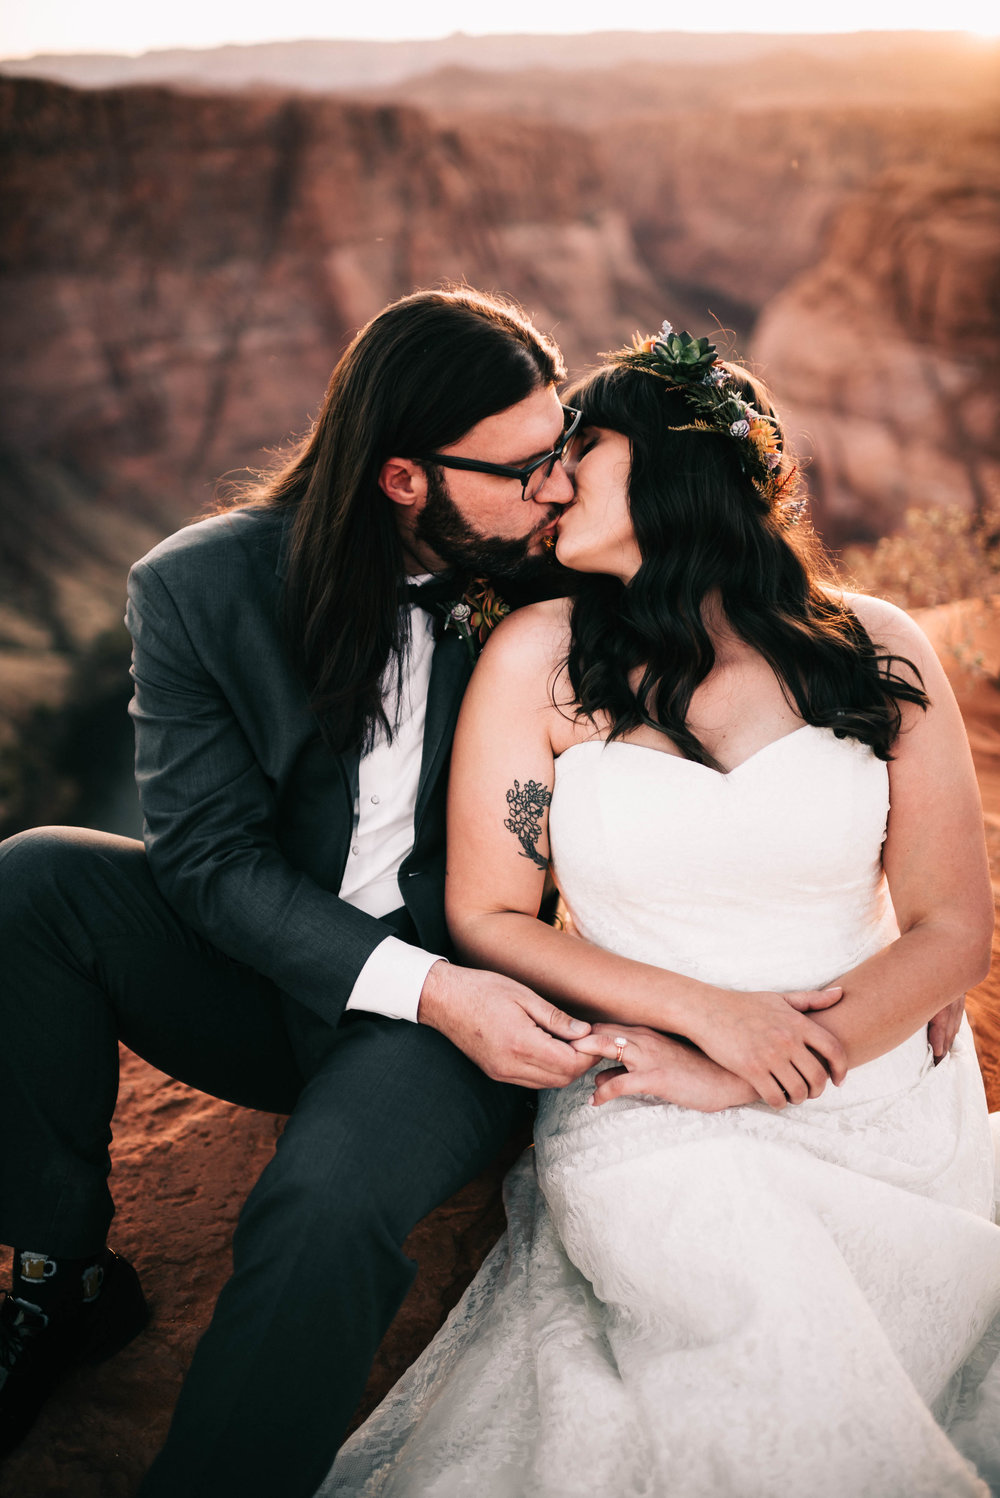 oregon arizon california utah georgia nontraditional adventure wedding elopement photographer-577.jpg